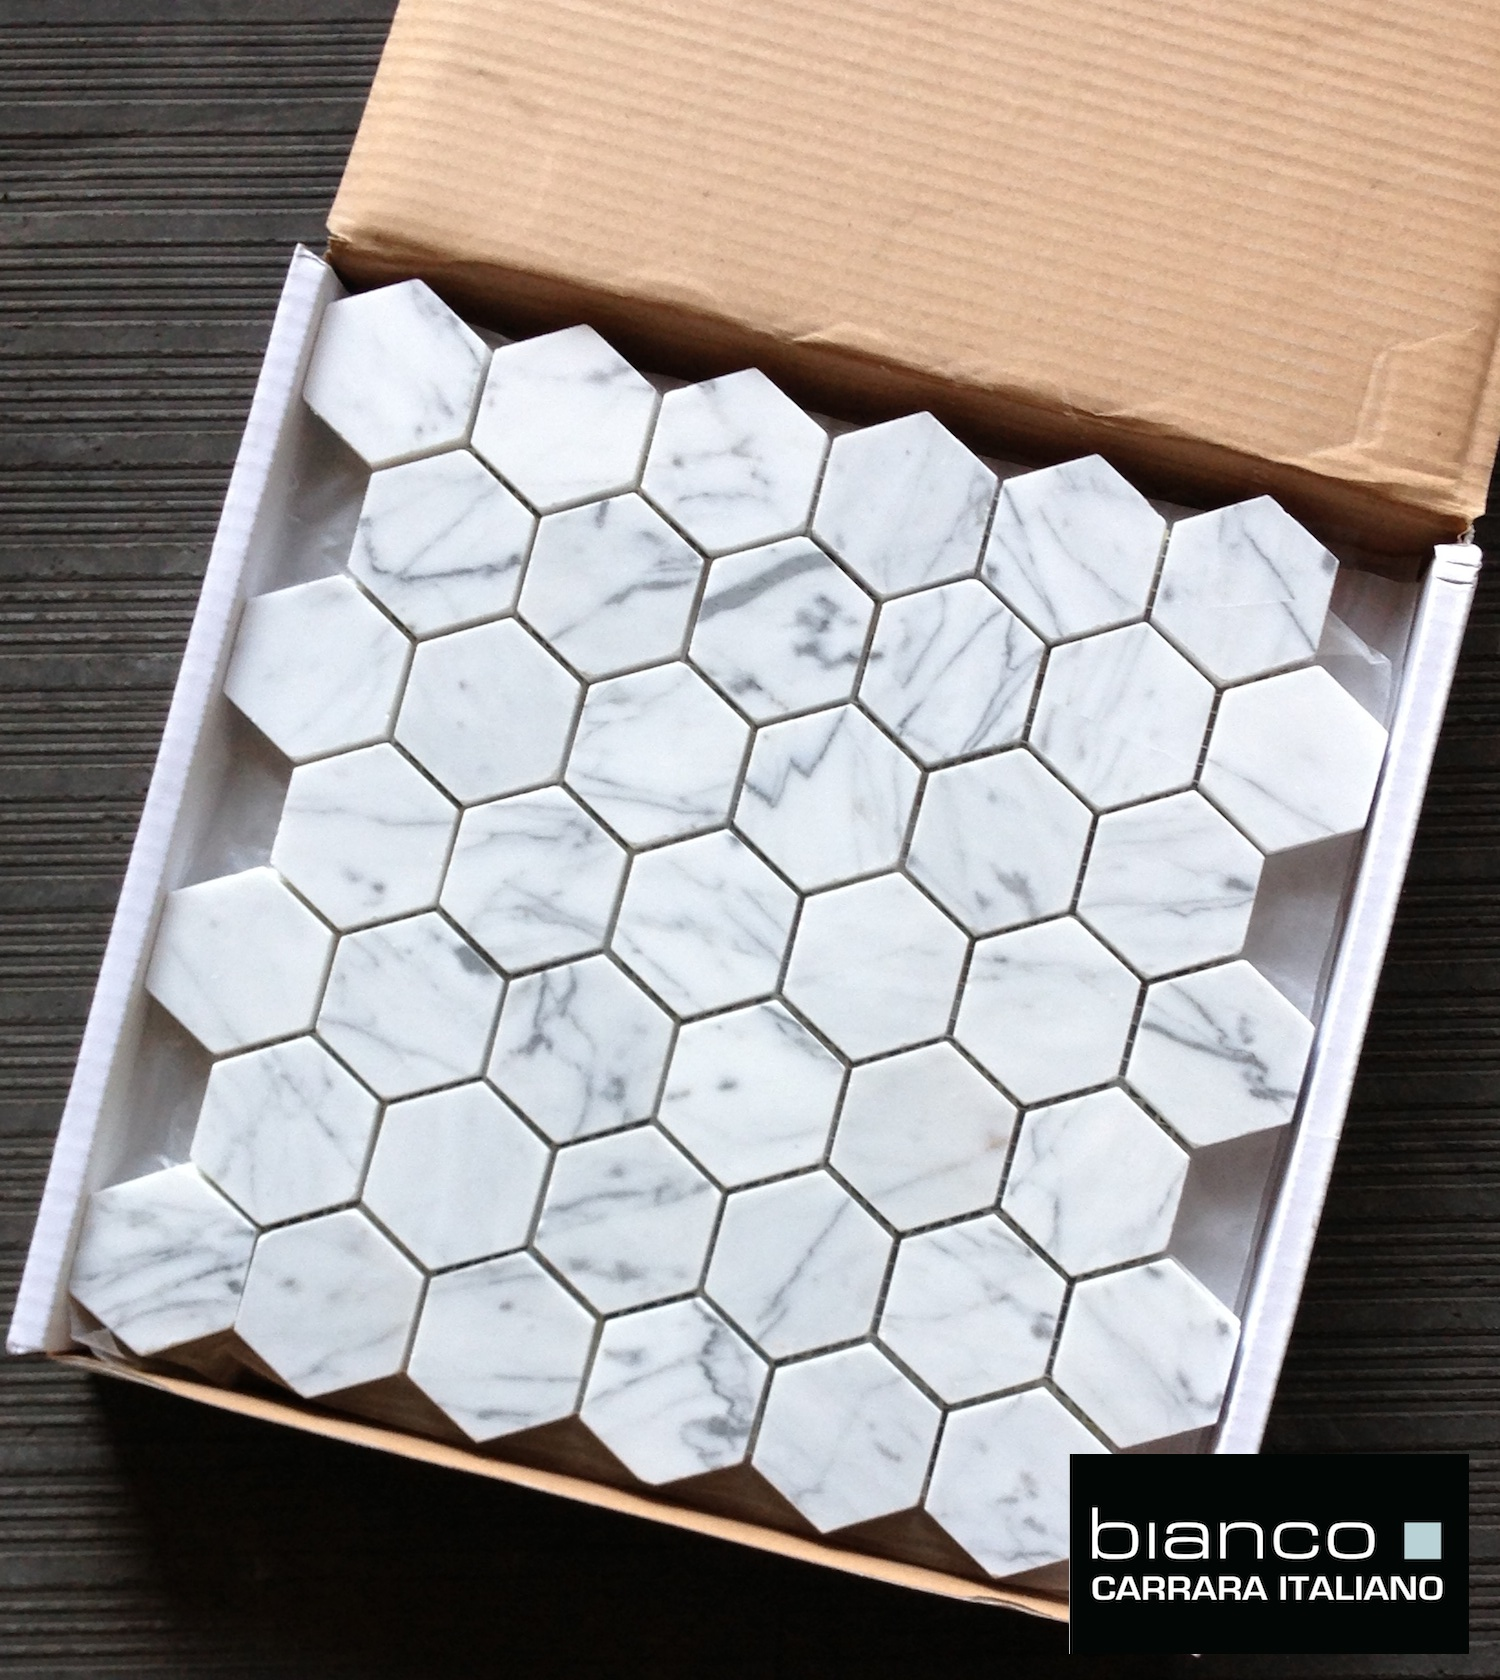 Perfect Lot Of Bianco Polished 2 Hexagon Mosaic Tile